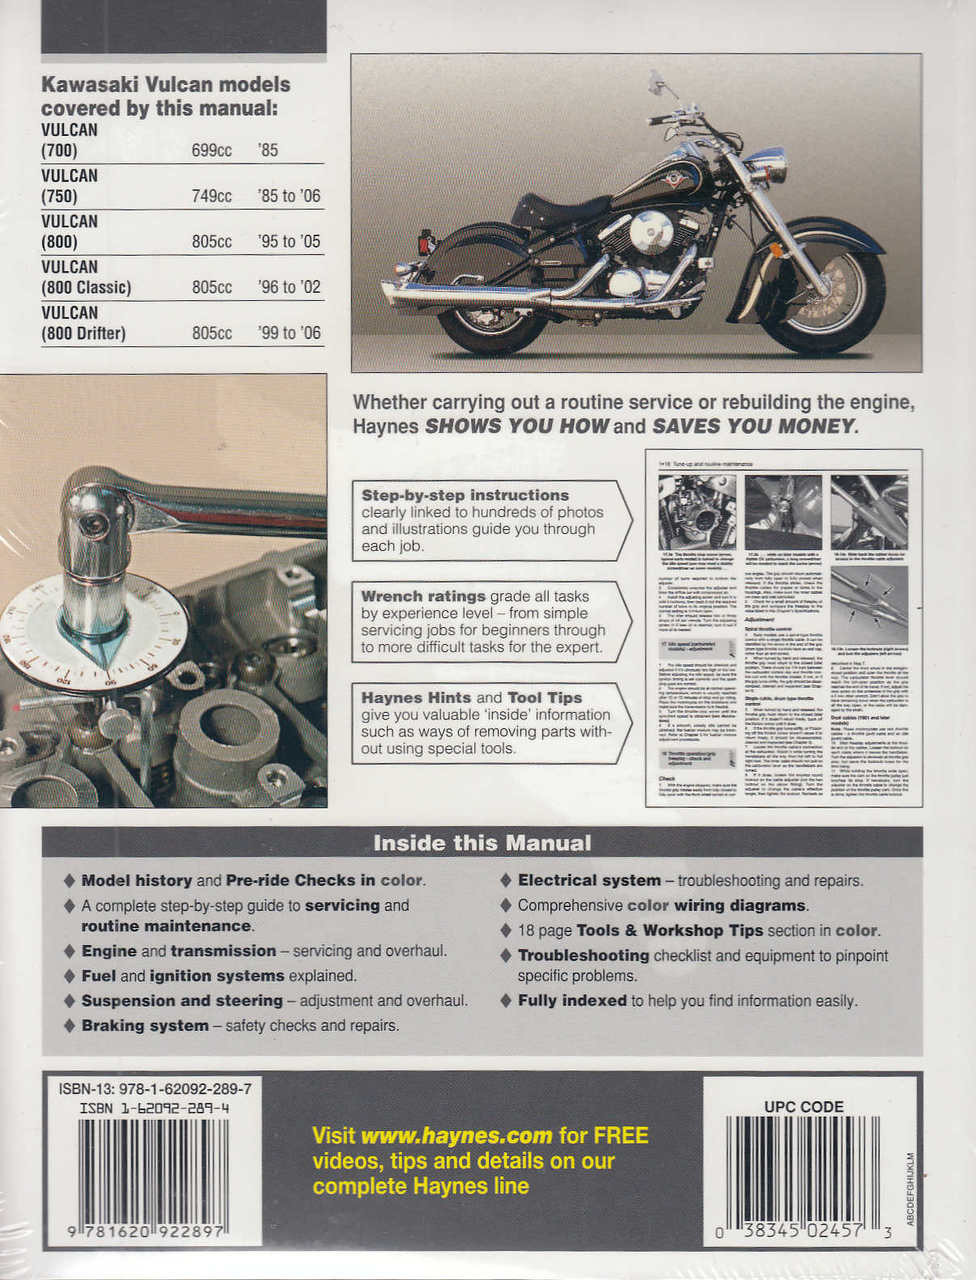 Kawasaki Vulcan 800 Ignition Wiring Diagram - Wiring Schematics on